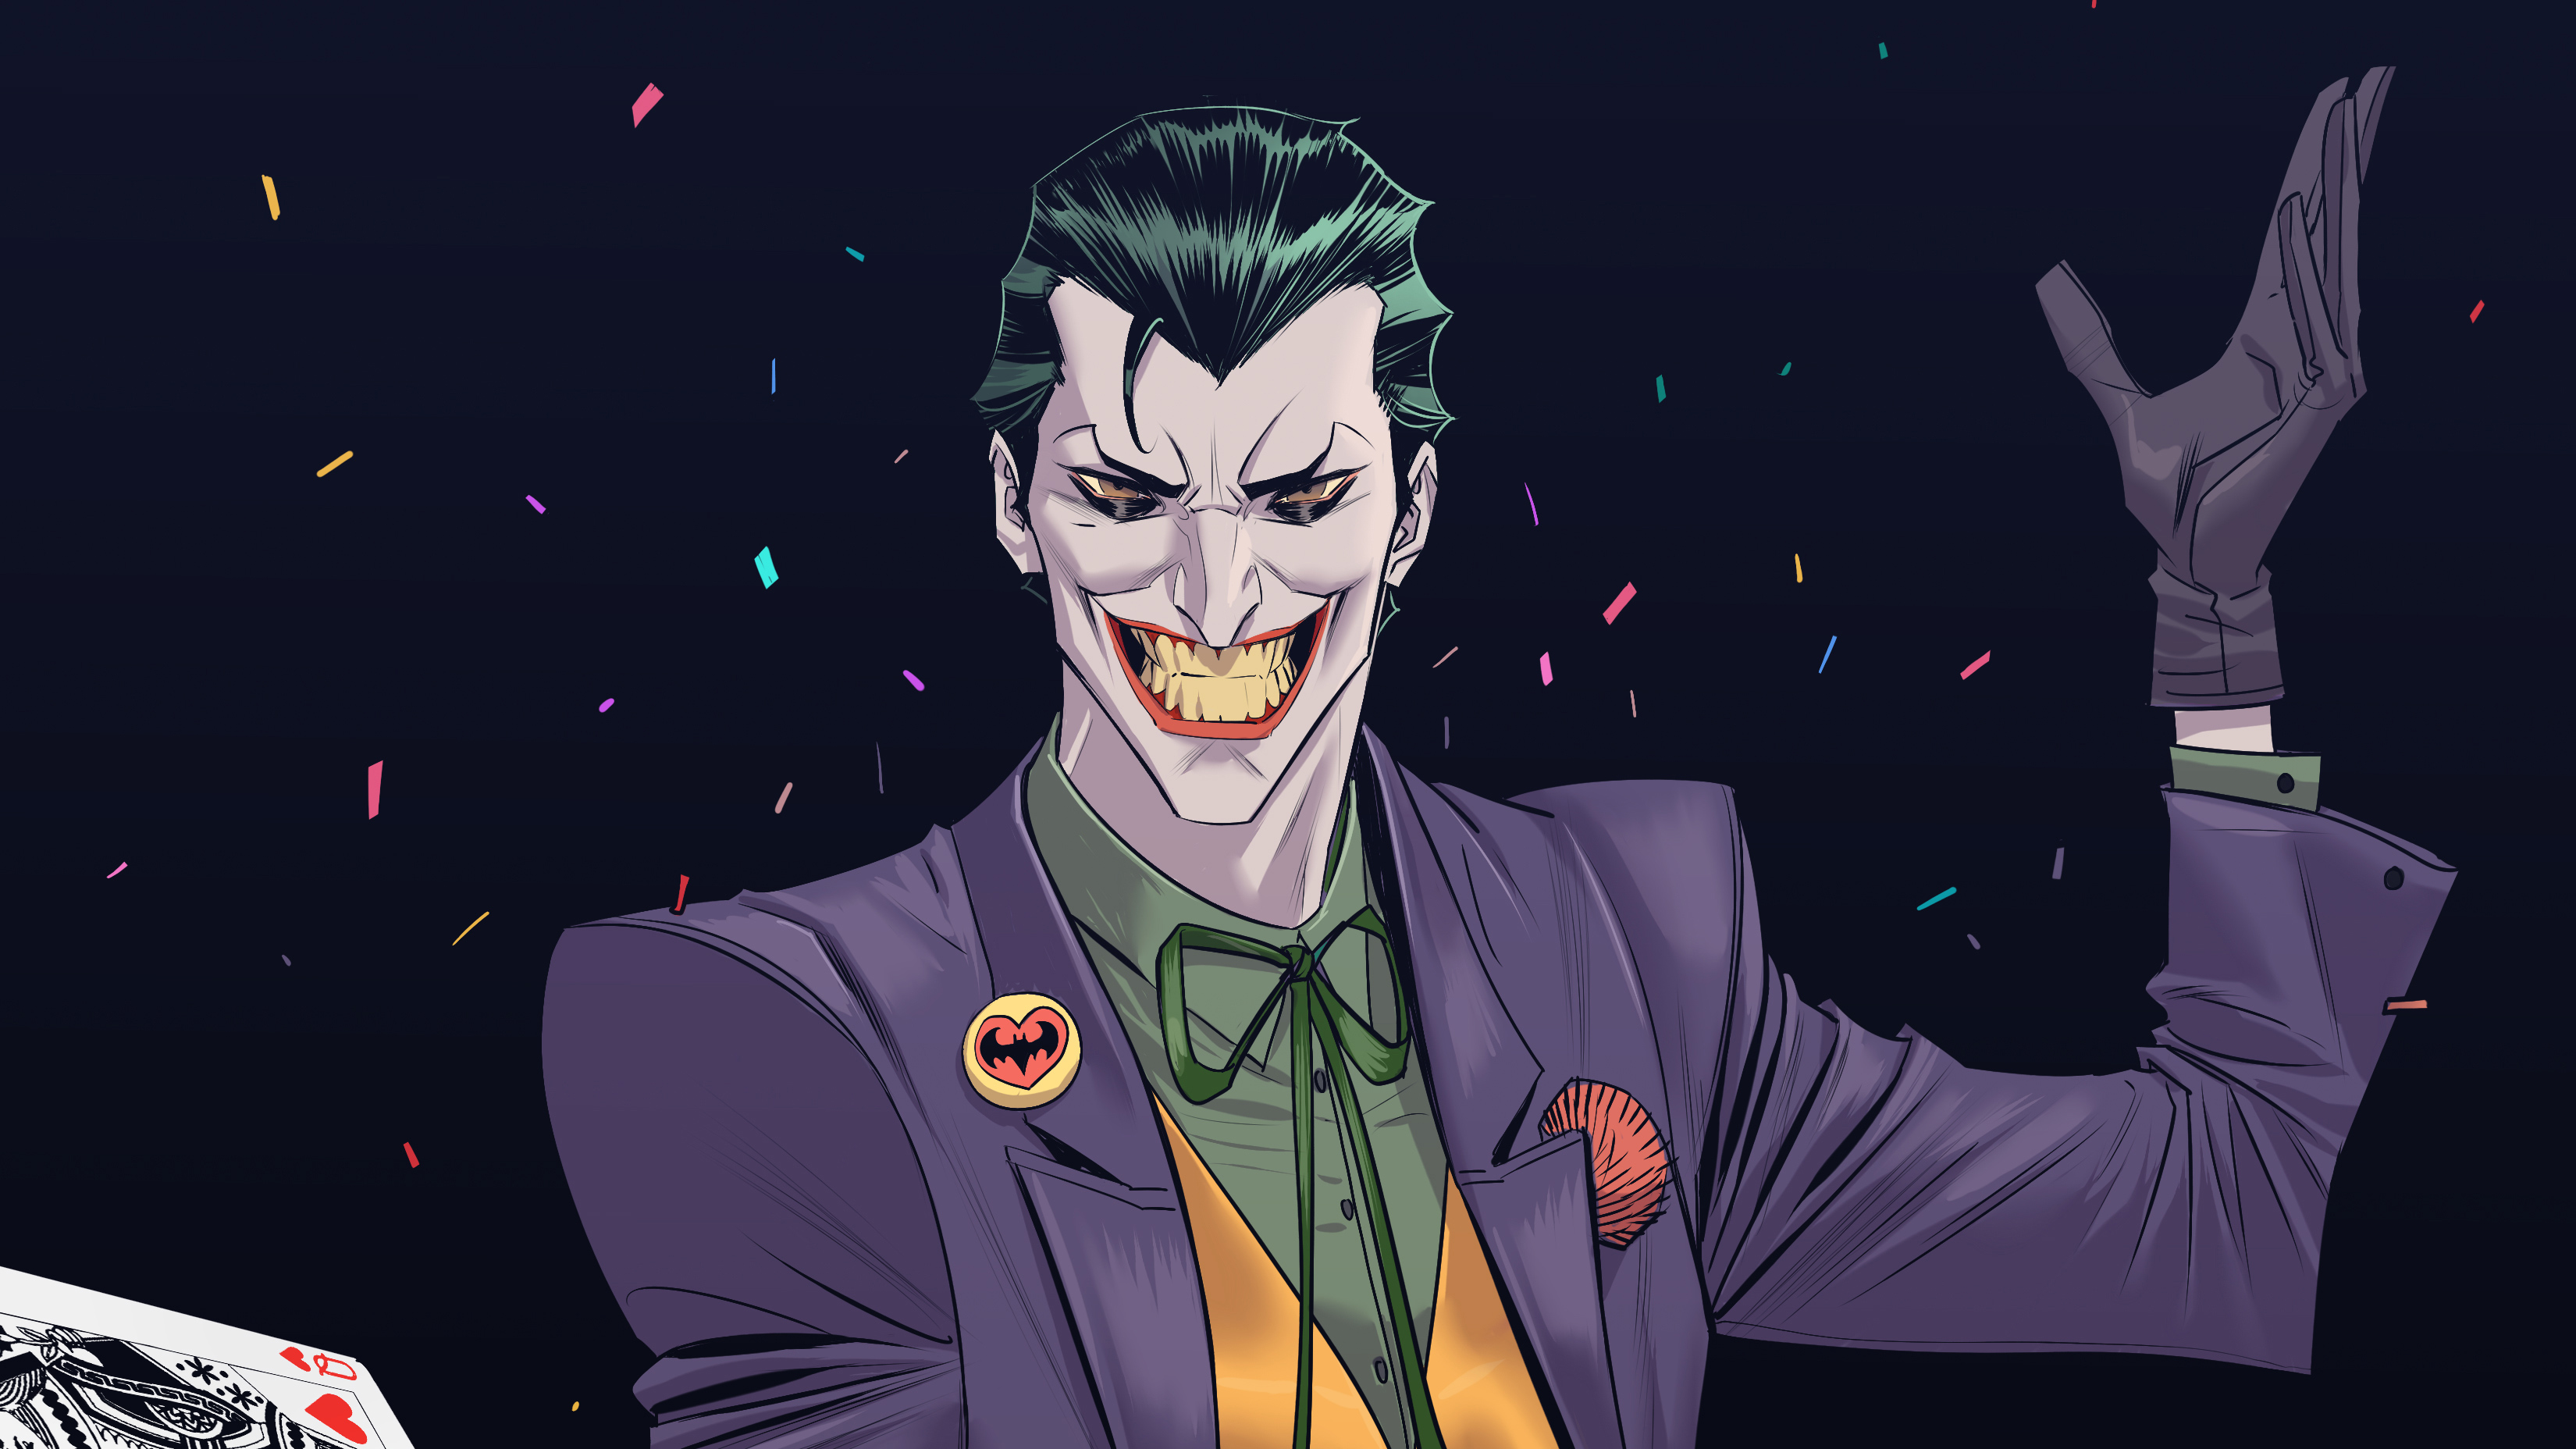 1920x1080 Cool Joker Laptop Full Hd 1080p Hd 4k Wallpapers Images Backgrounds Photos And Pictures